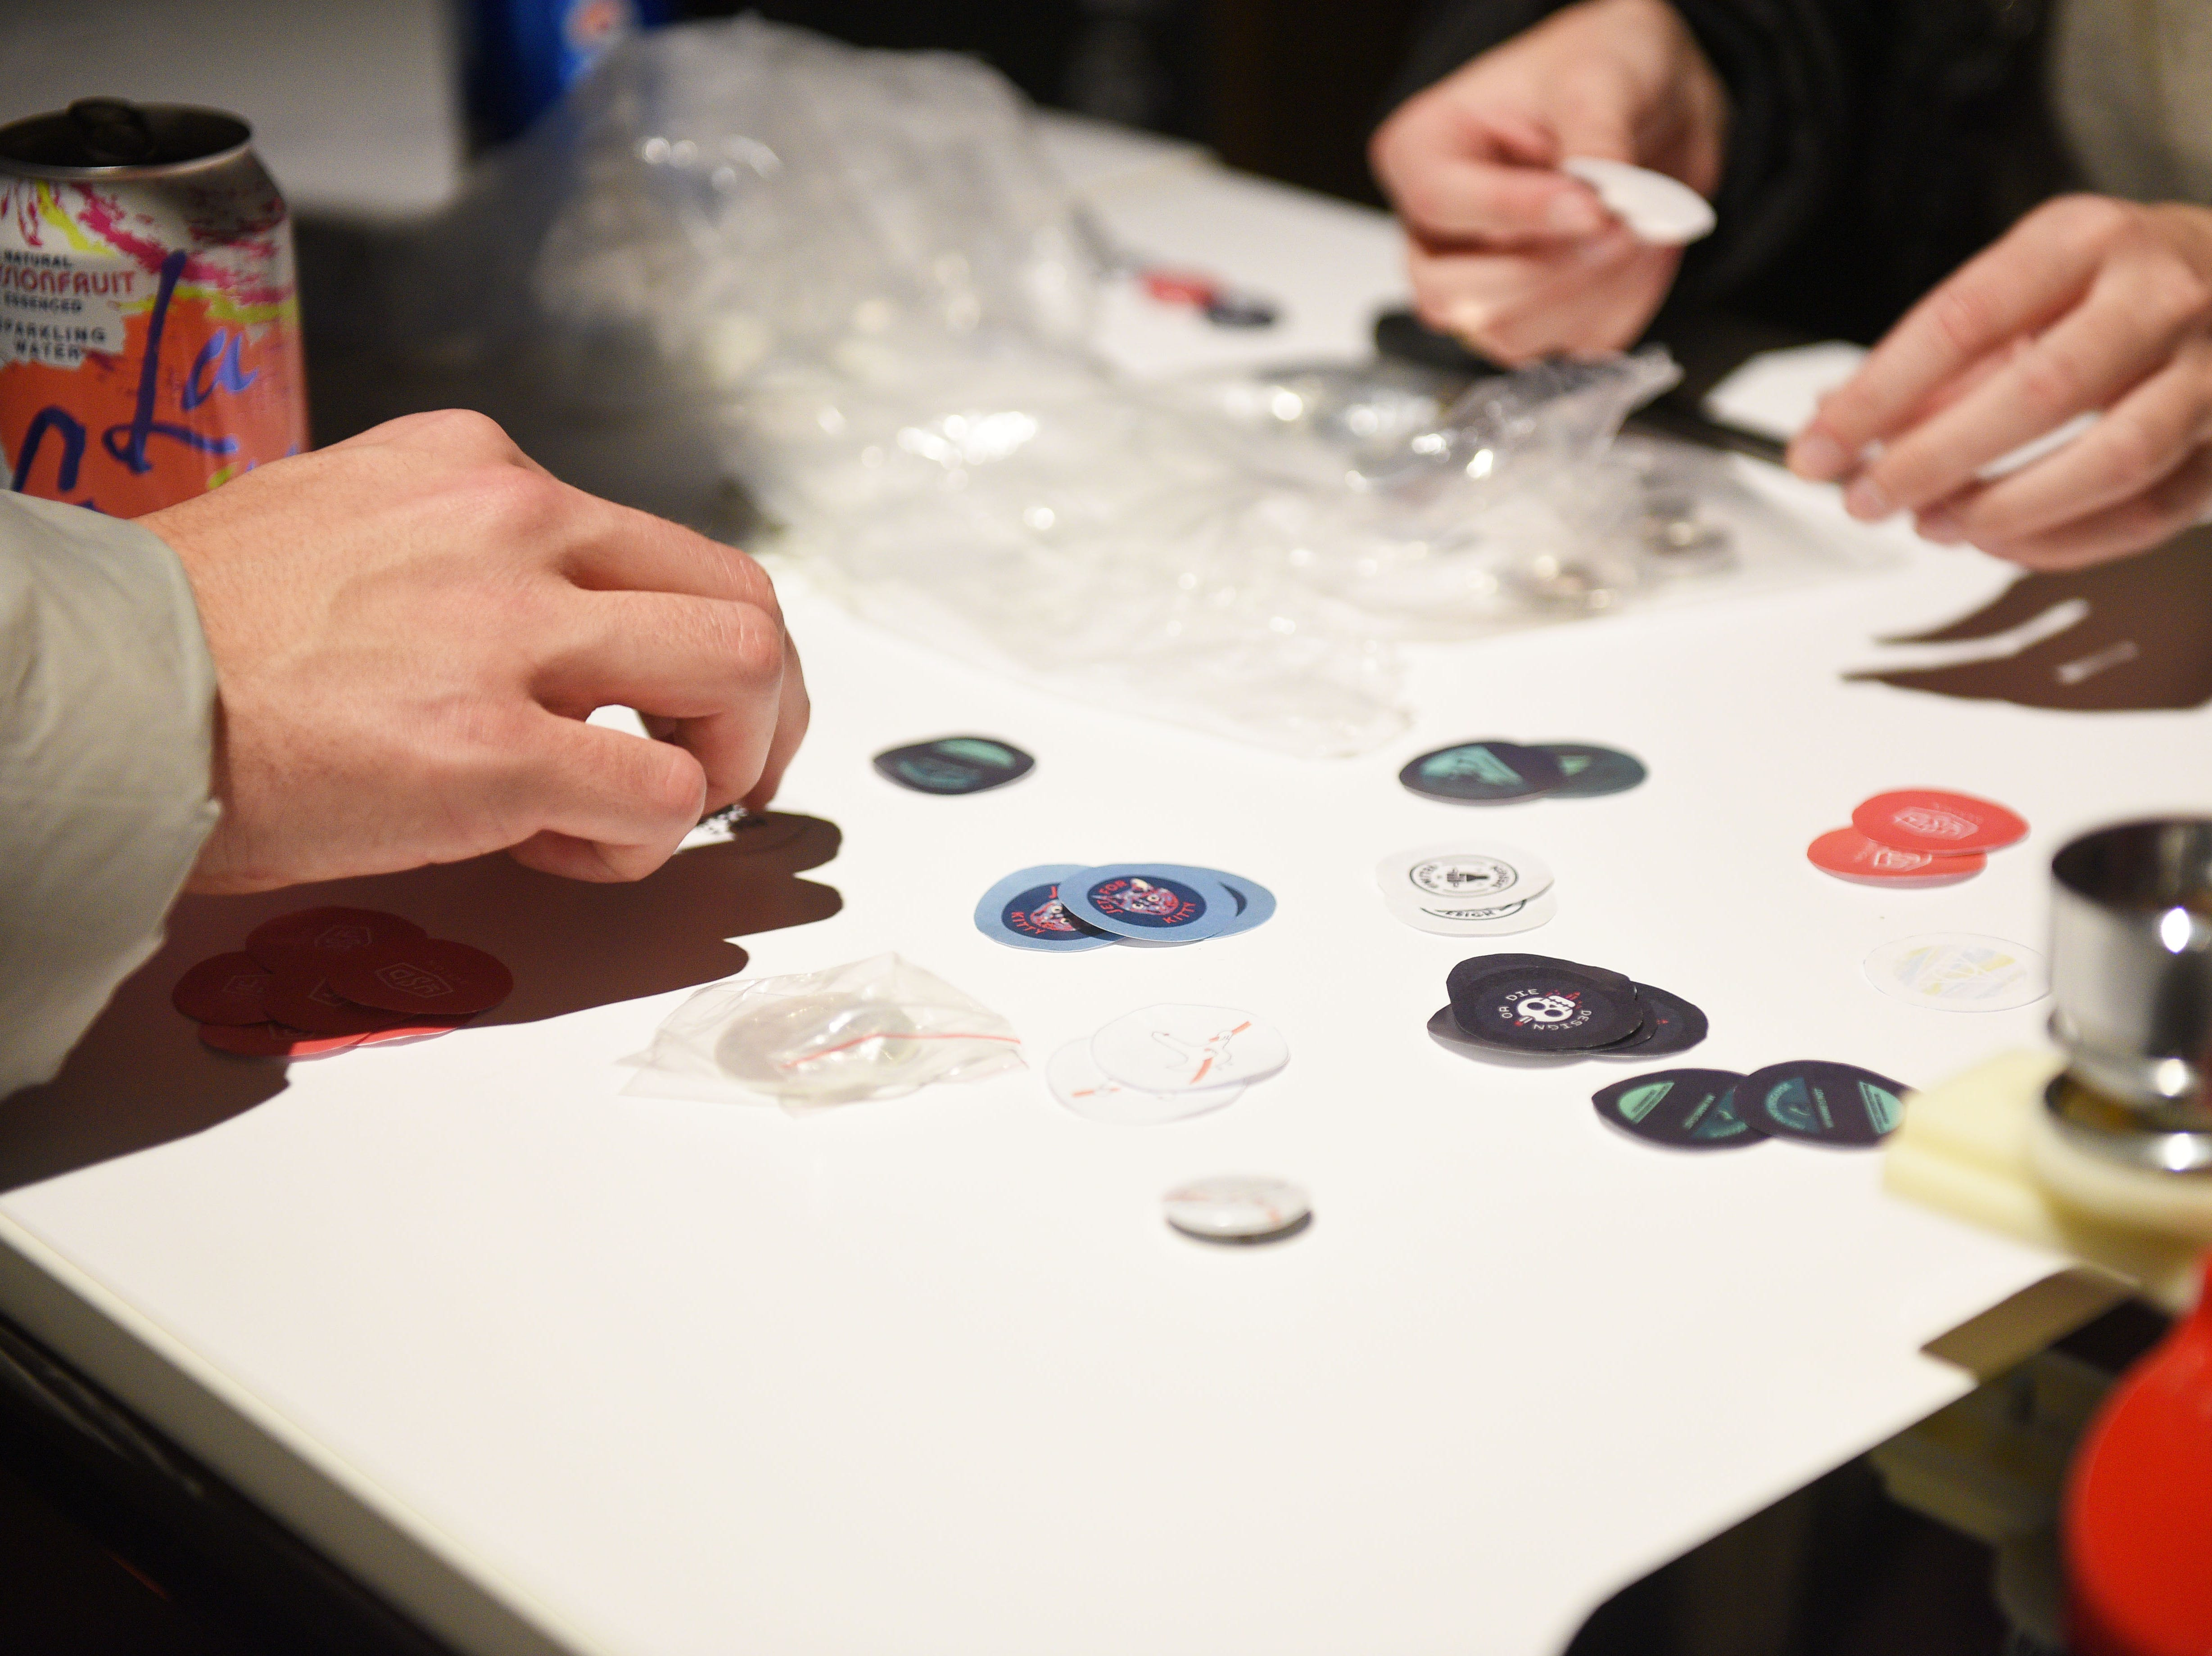 Attendees makes buttons during the USD Graphic Design Student work show Wednesday, Nov. 7, at the Sioux Falls Design Center in downtown Sioux Falls. Sherry He, not pictured, brought the button maker to the show as an activity for attendees.